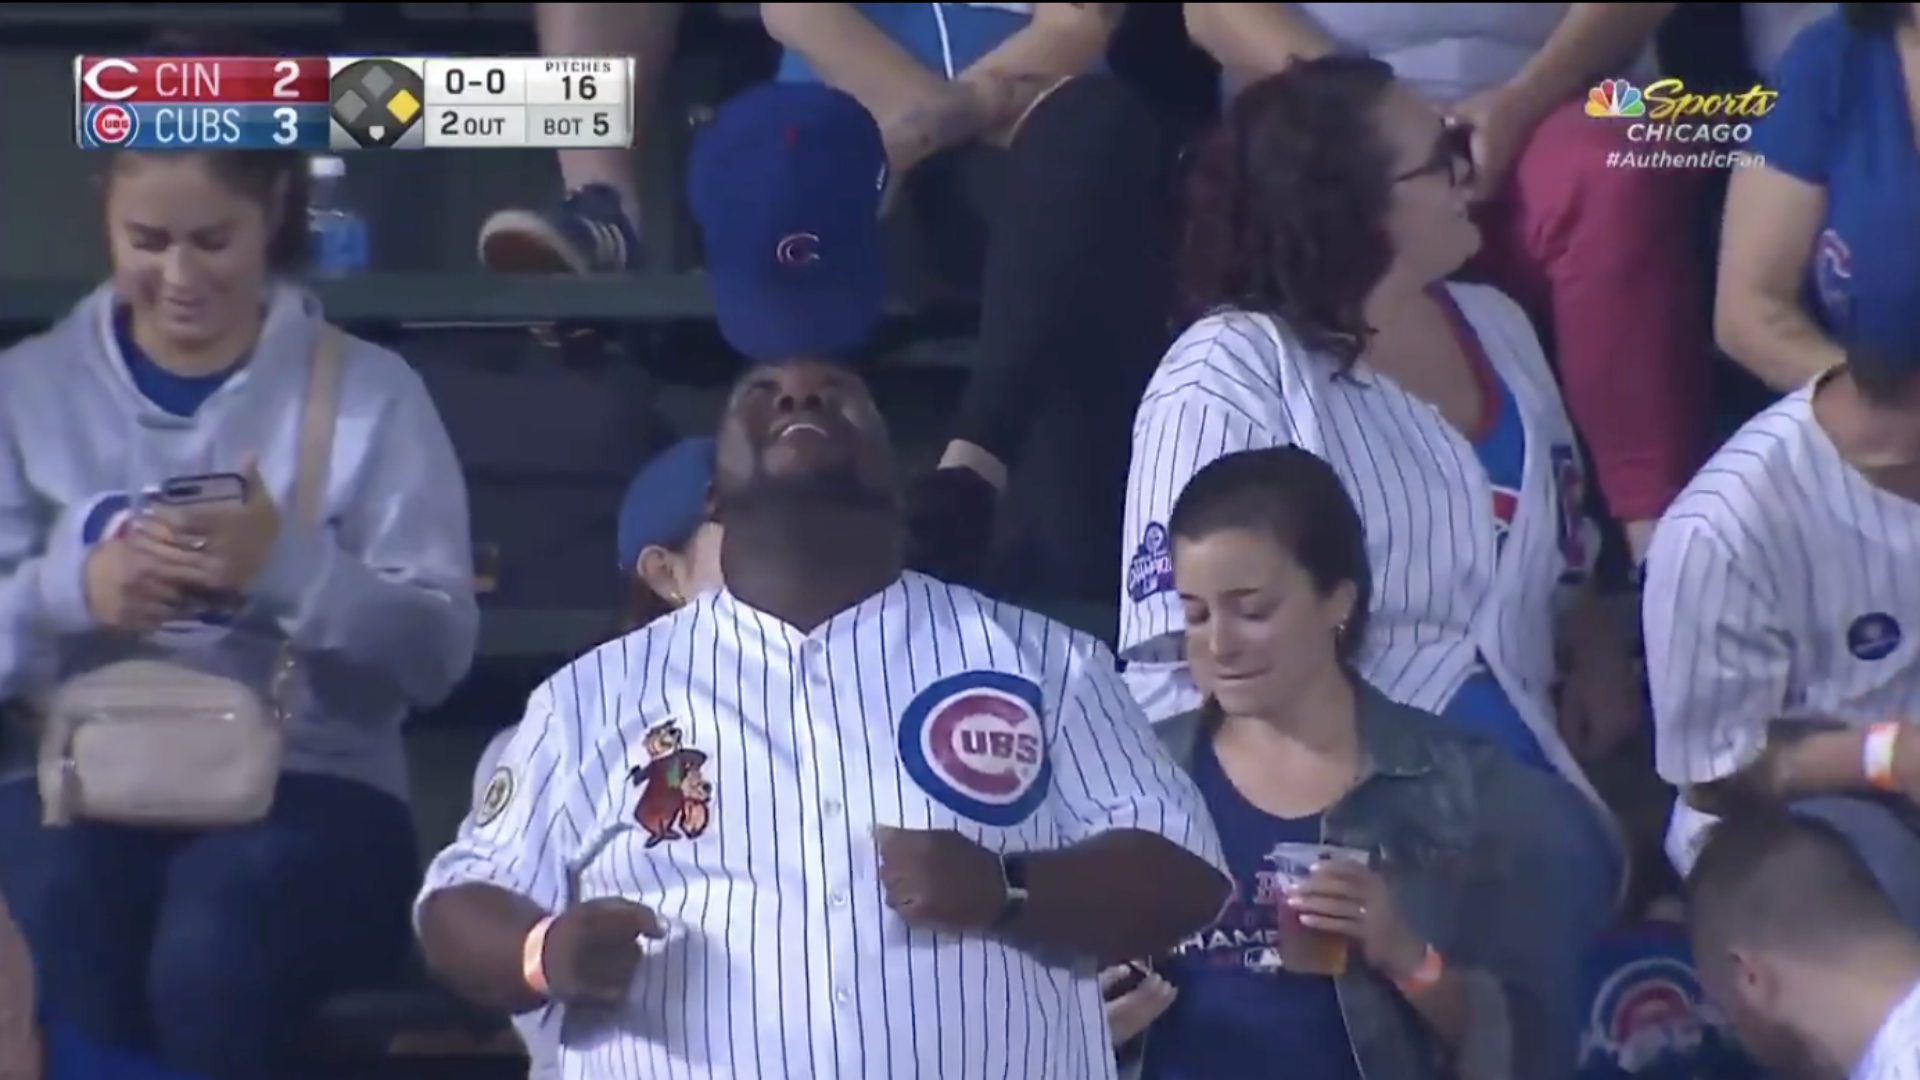 Cubs fan basks in hat act glory, Wrigley Field's reaction offers insight into humanity